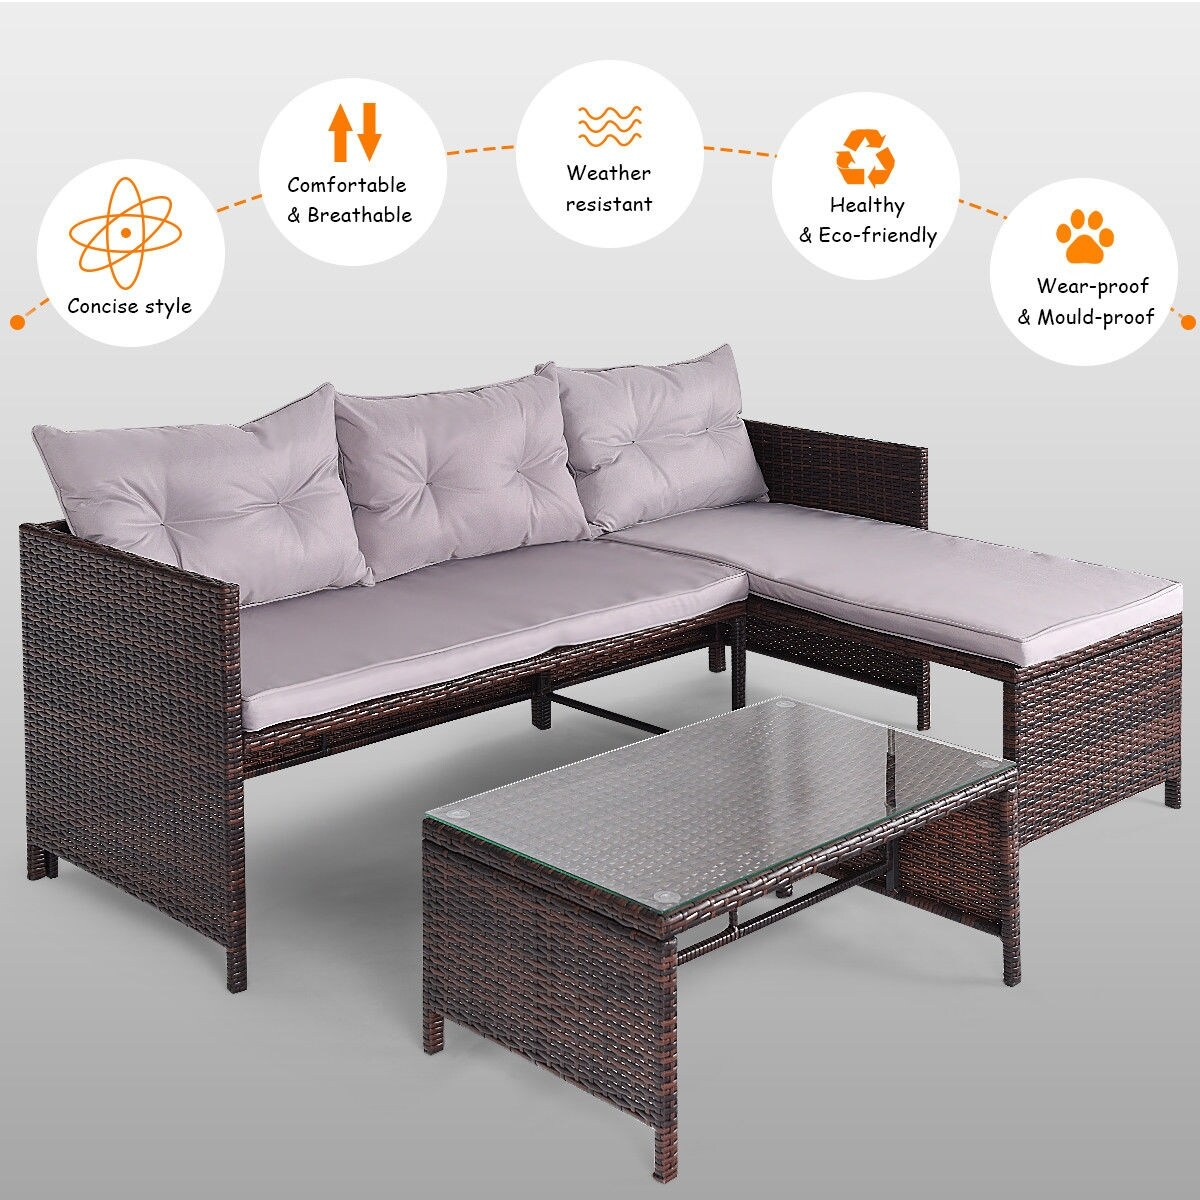 Costway 3 Pcs Outdoor Rattan Furniture Sofa Set Lounge Chaise Cushioned Patio Garden New As Pic Free Shipping Today 16386651